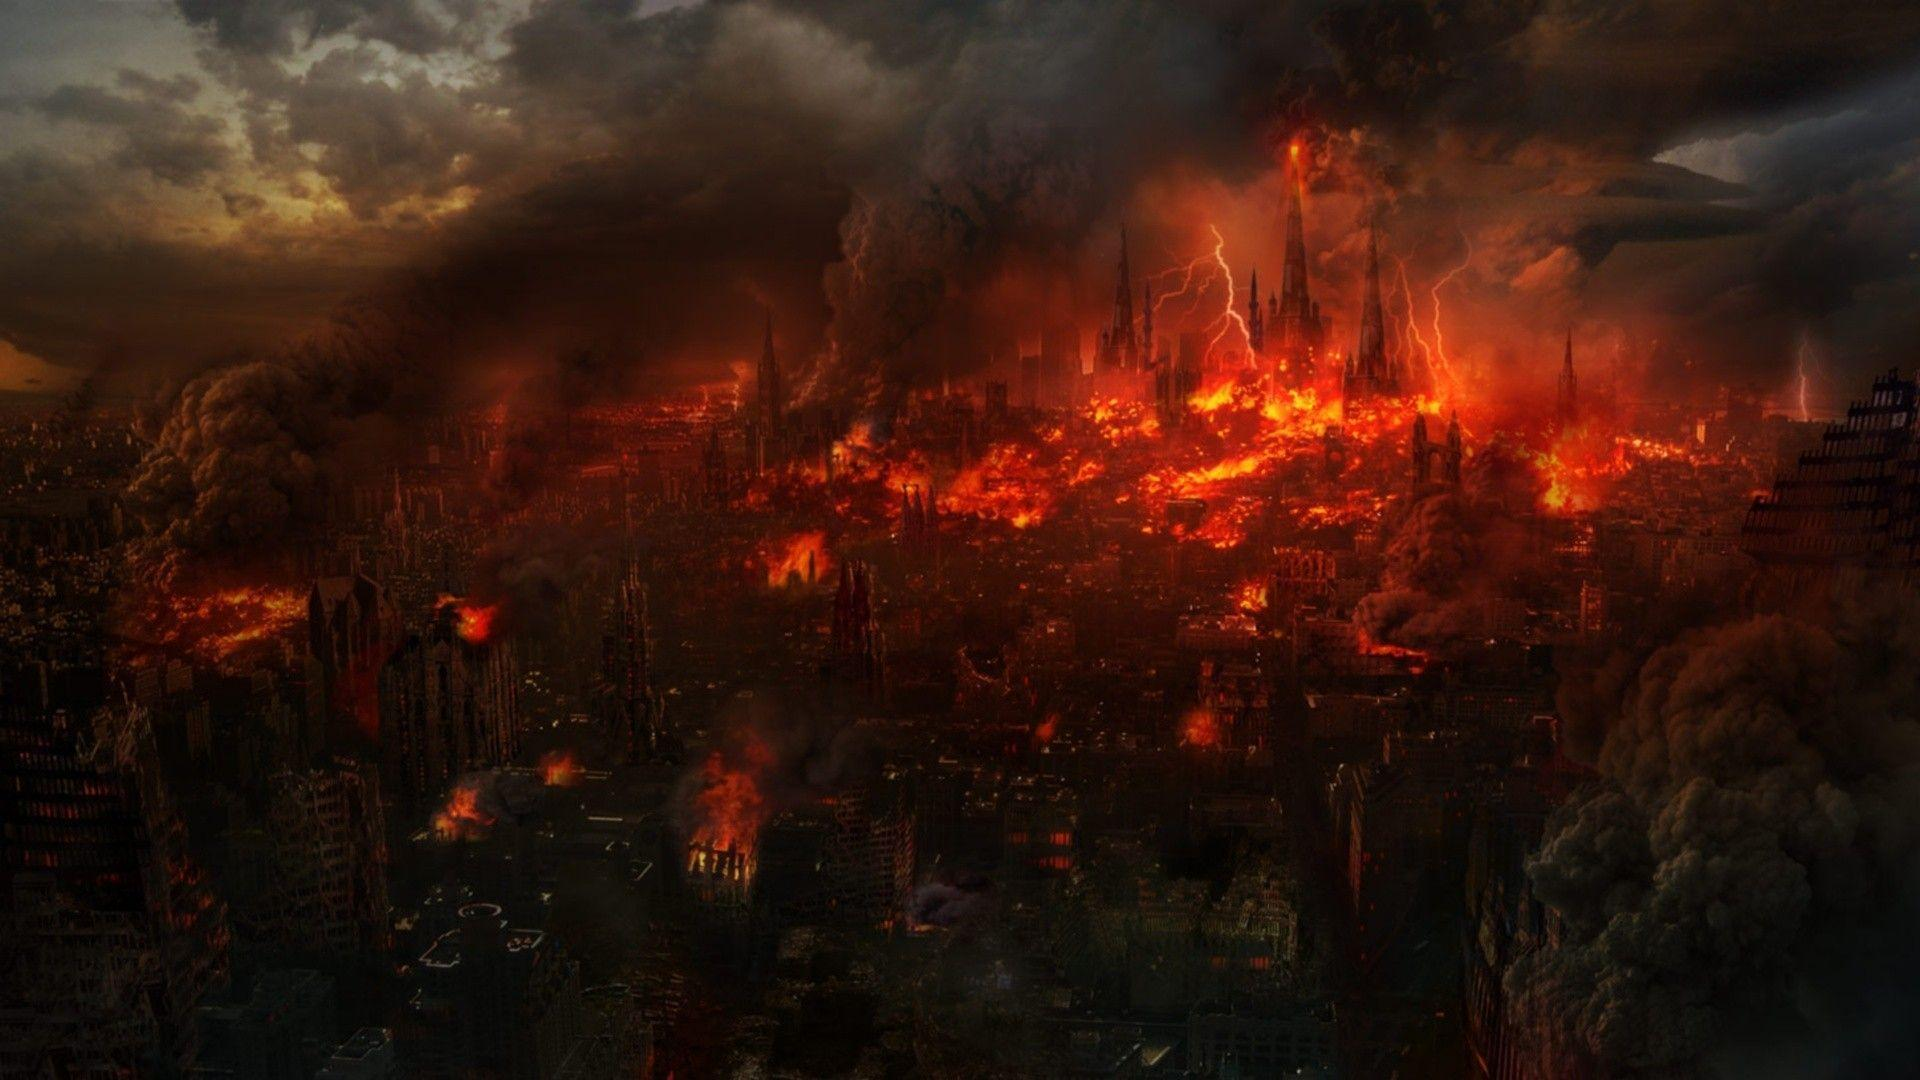 Burning City Backgrounds - Wallpaper Cave